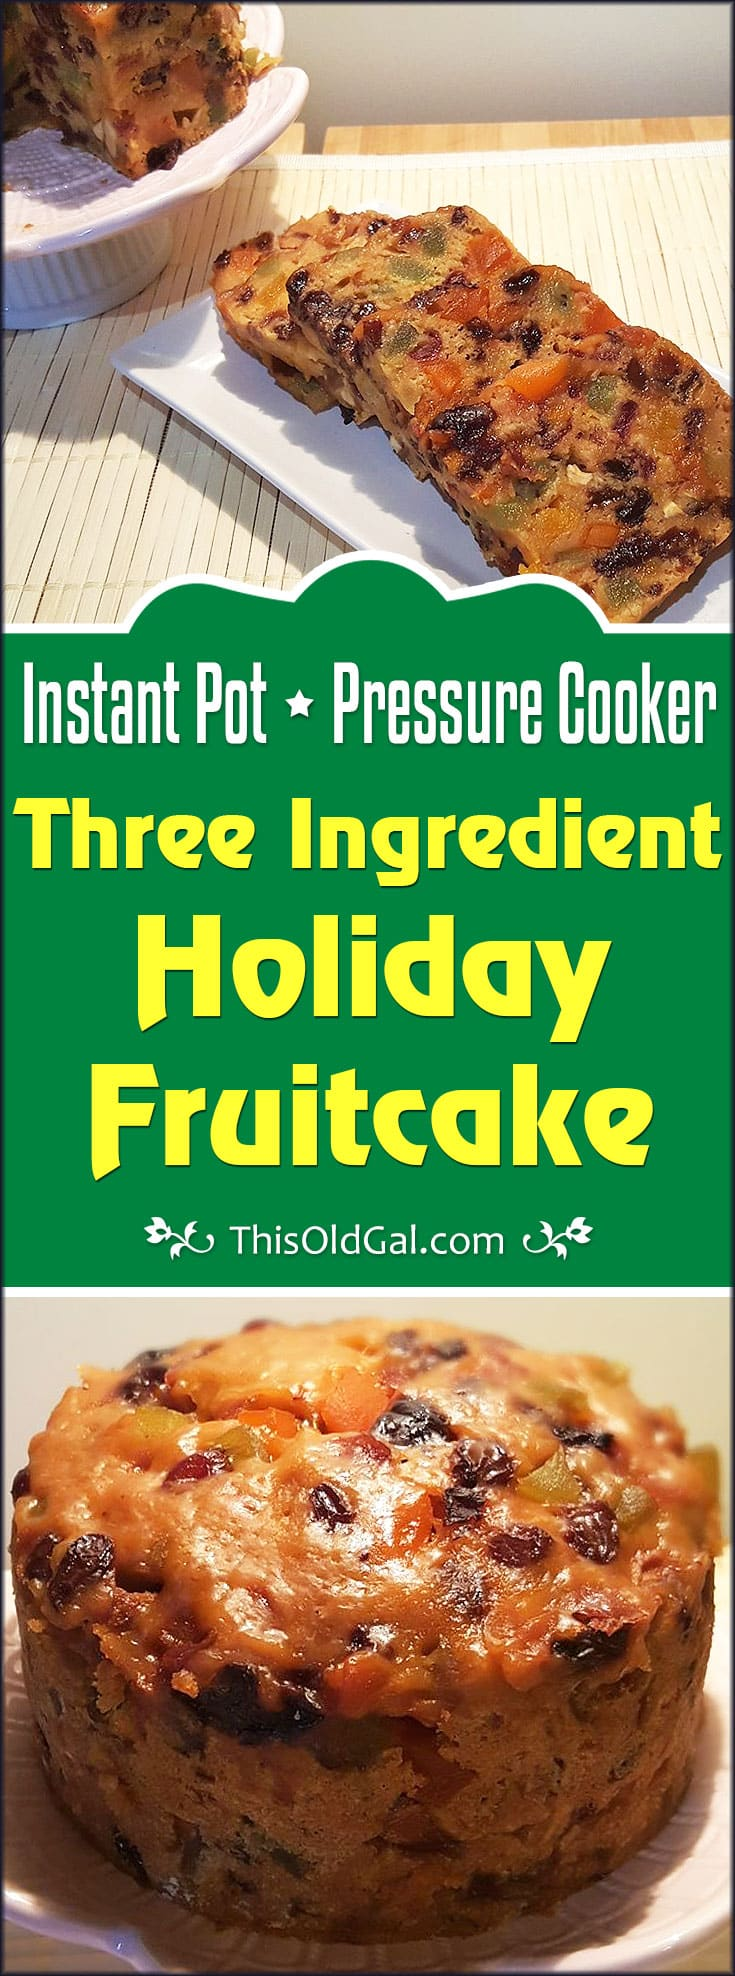 Pressure Cooker Three Ingredient Holiday Fruitcake